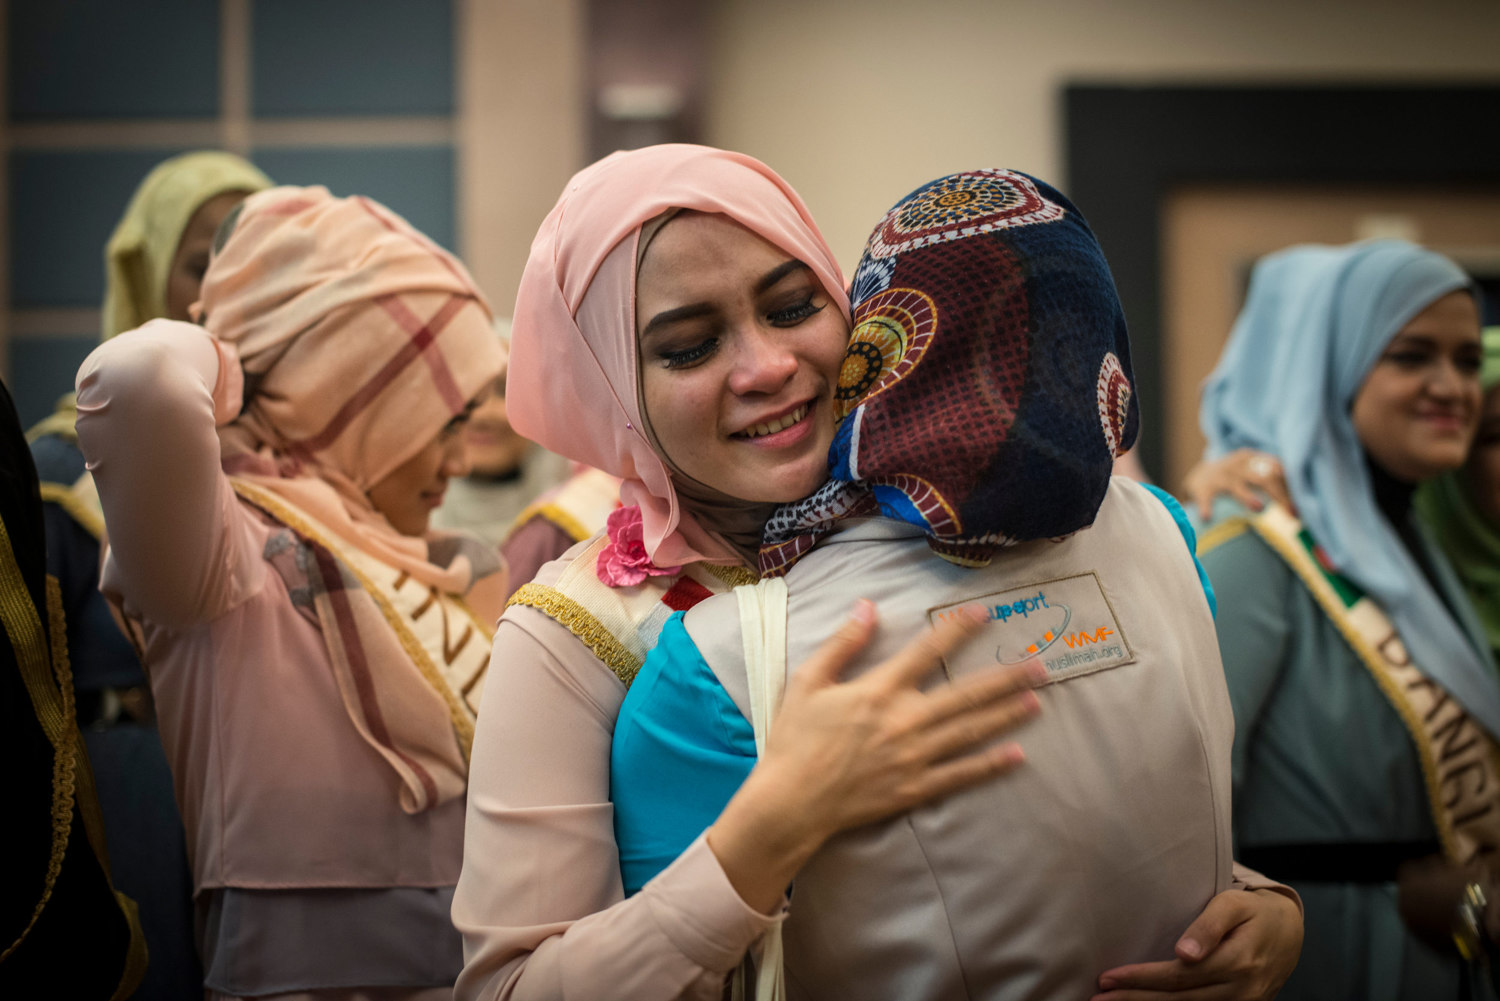 At the end of the forum some of the girls get emotional as the week draws to a close on November 19th, 2014 in Yogakarta, Indonesia.